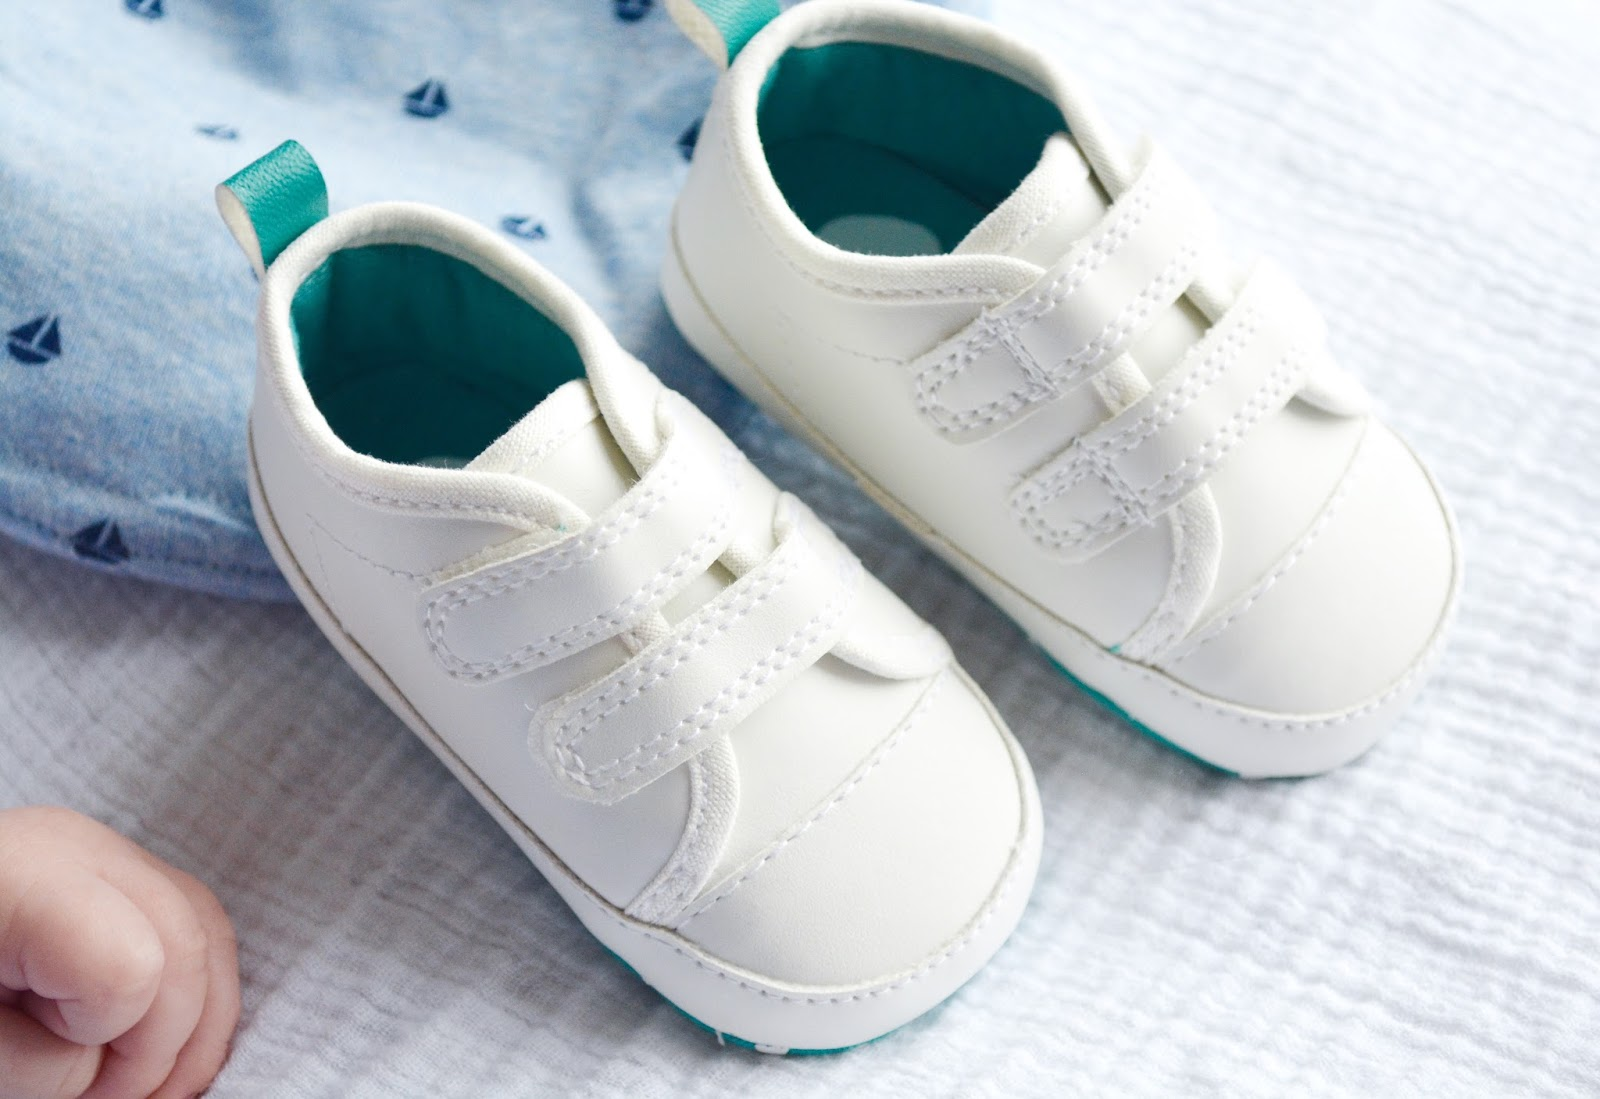 Next Baby Boy, Baby Boy Haul, Baby OOTD, Next Clothing, Baby Joggers, Baby Flat Cap, Baby Boy White Trainers, Mummy and Baby,